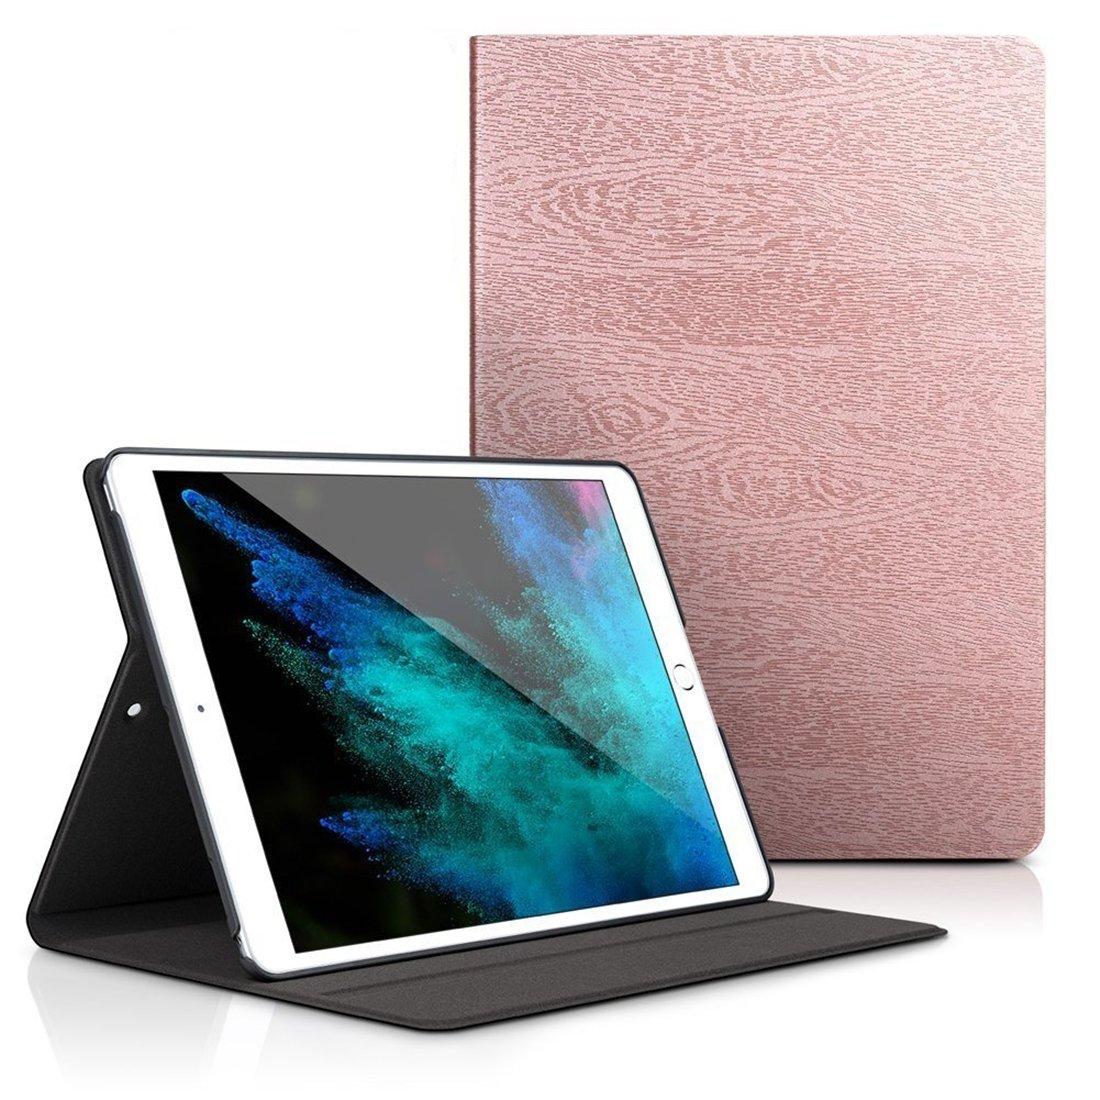 iPad Mini 4 Case,Dream Wings Slim Book Style Stand with Auto Sleep/Wake Screen Protective Smart Cover for Apple iPad Mini 4 7.9 inch Tablet (Rose Gold)